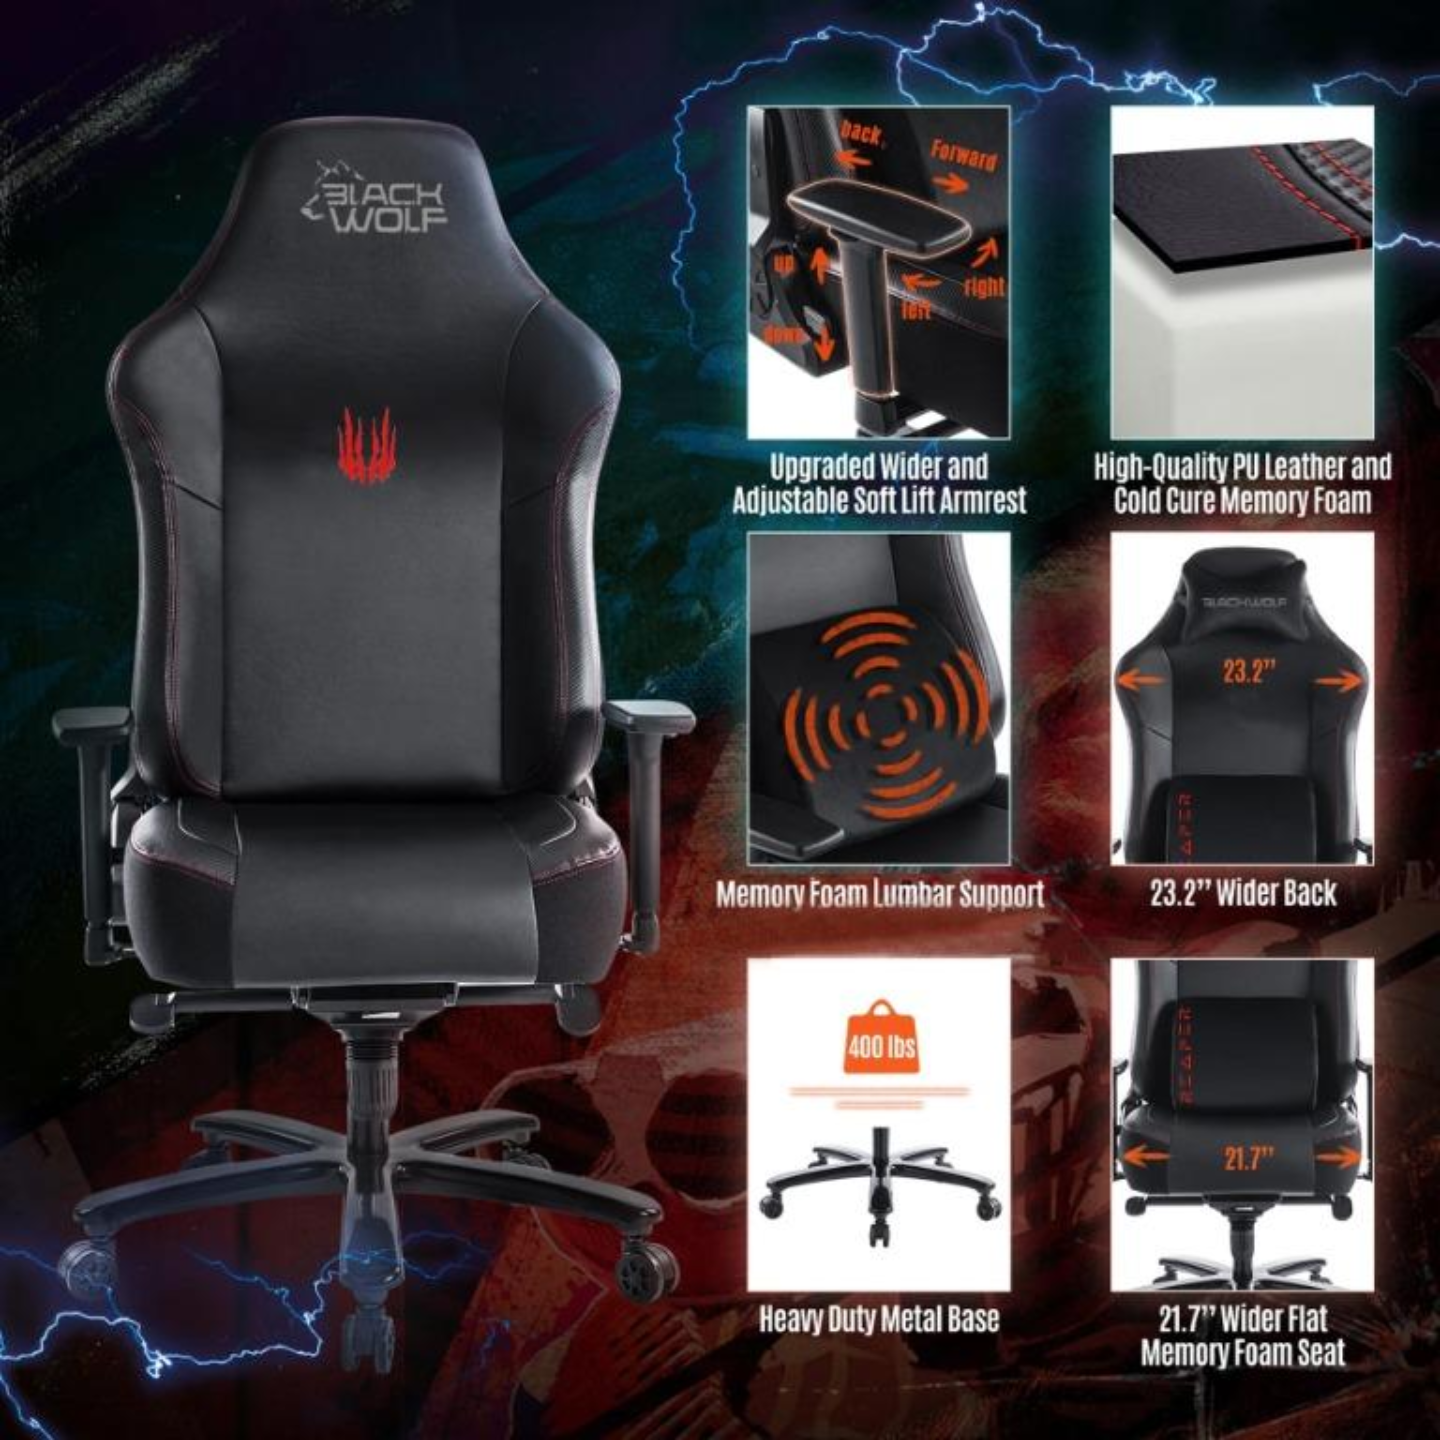 BLACKWOLF Reaper Series Ergonomic Gaming Chair